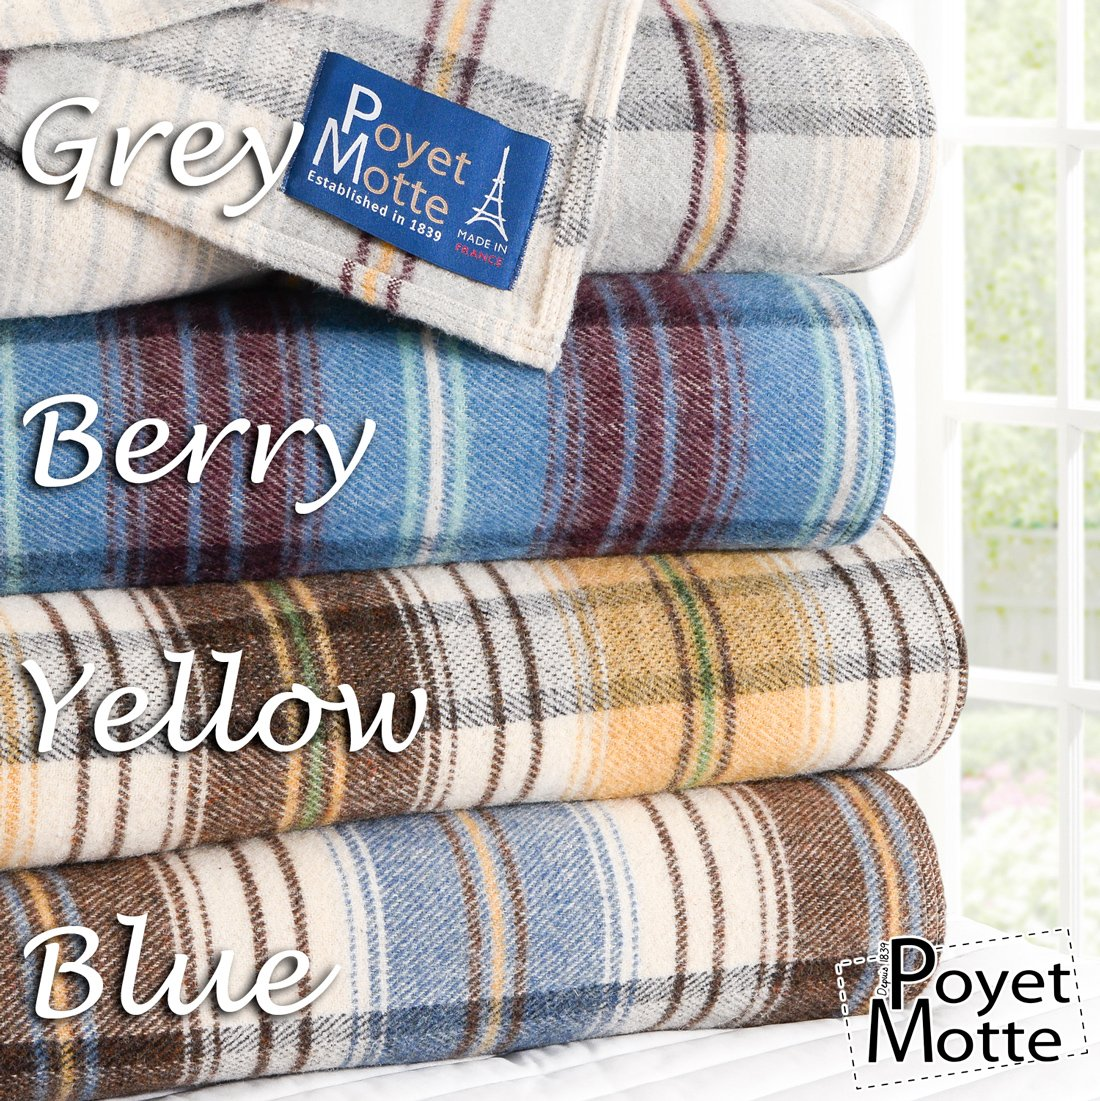 Poyet Motte Chevreuse Heavyweight Wool Blend Oversized Blanket, Machine Washable (Twin Size, Yellow Stripe) by Poyet Motte Made In France (Image #5)